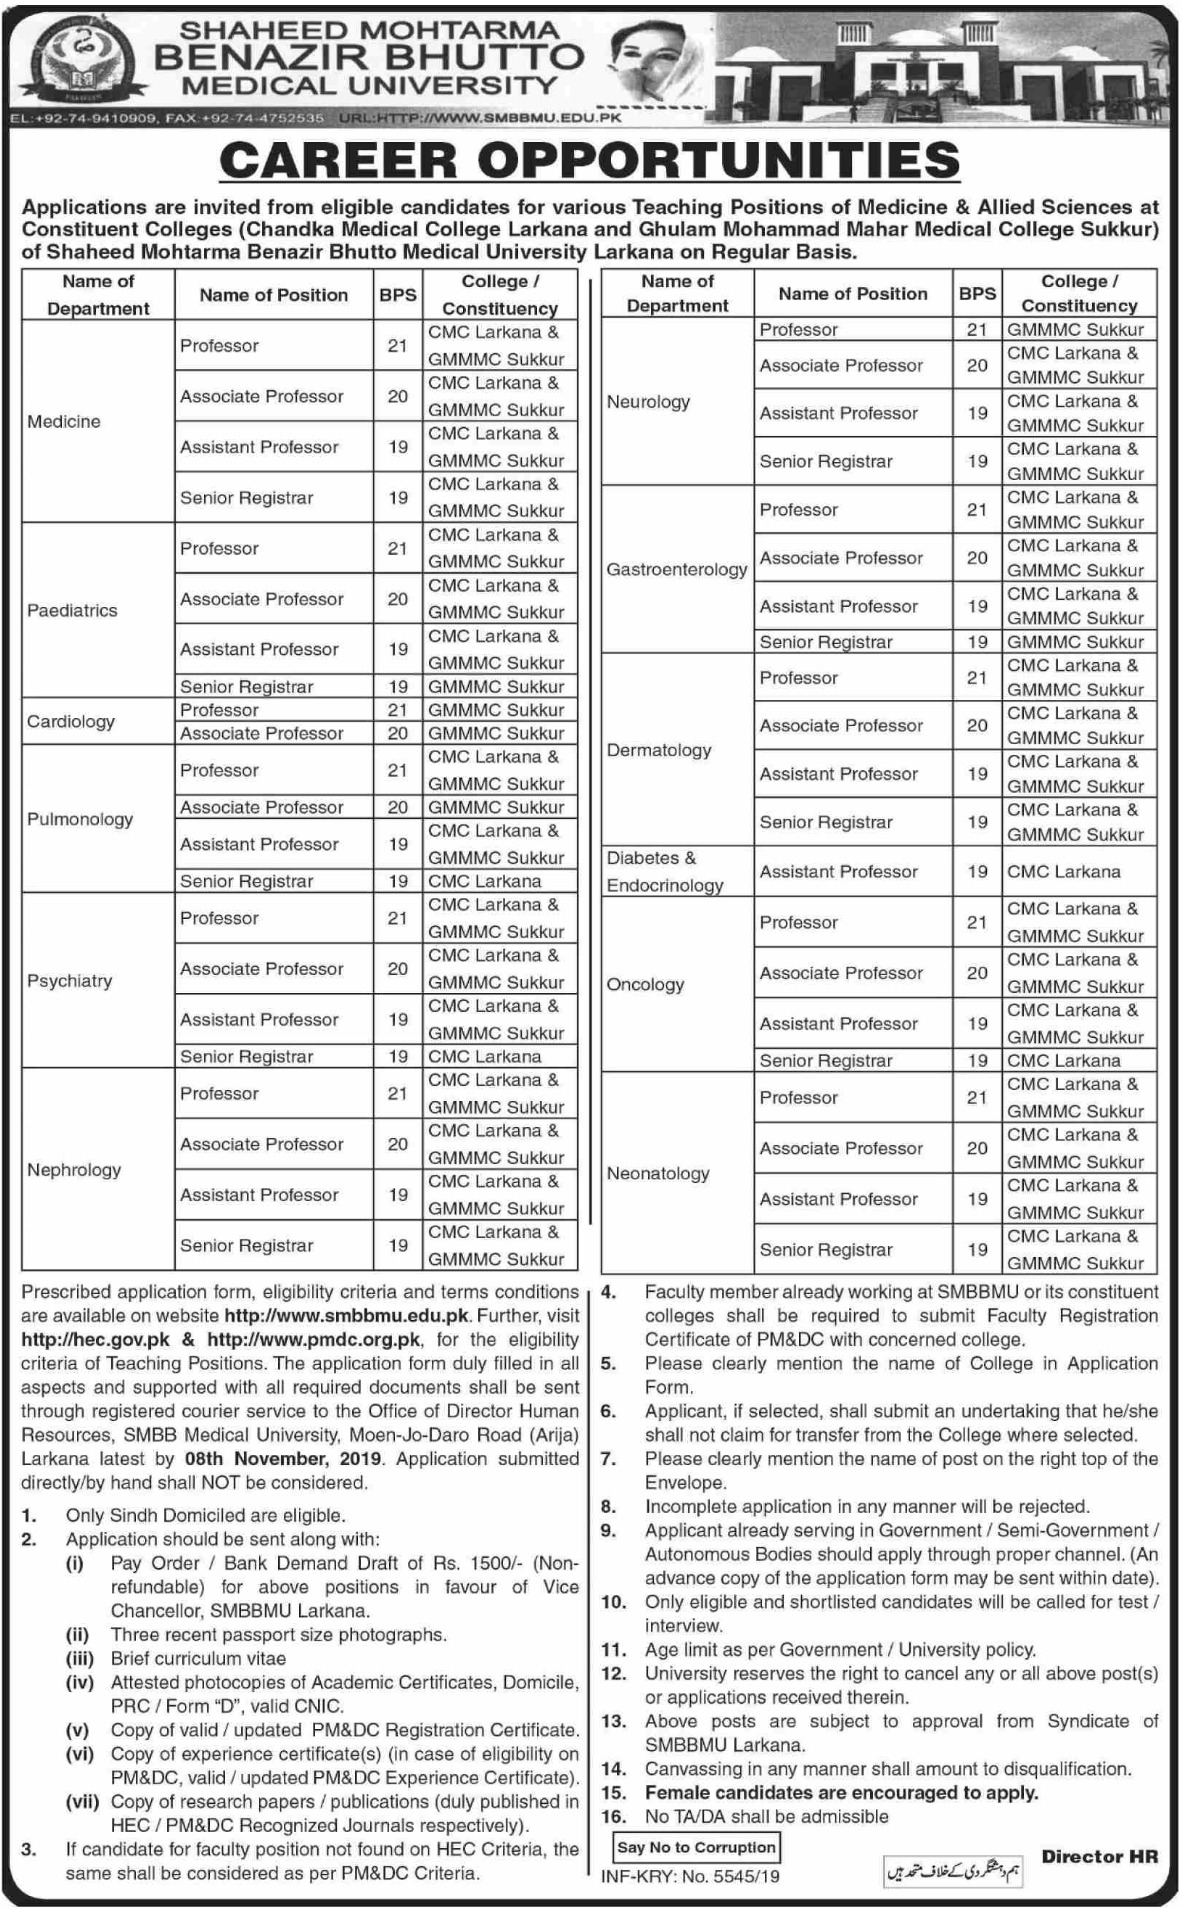 Shaheed Mohtarma Benazir Bhutto Medical University SMBBMU Jobs 2019 Larkana Sindh